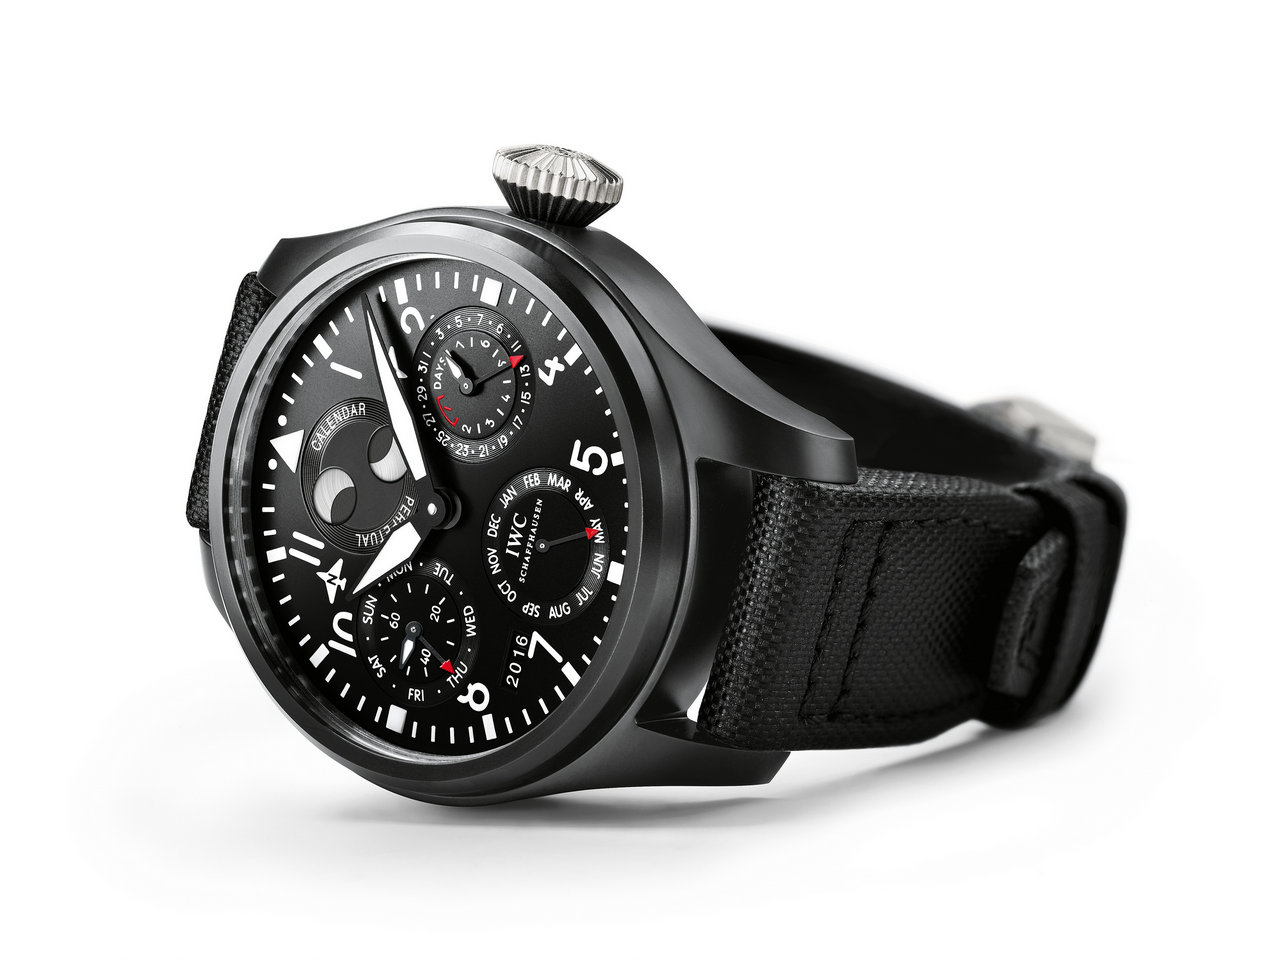 SIHH-2016-IWC-Big-Pilot-Watch-Perpetual-Calendar-TOP-GUN-IW502902-0-100_1